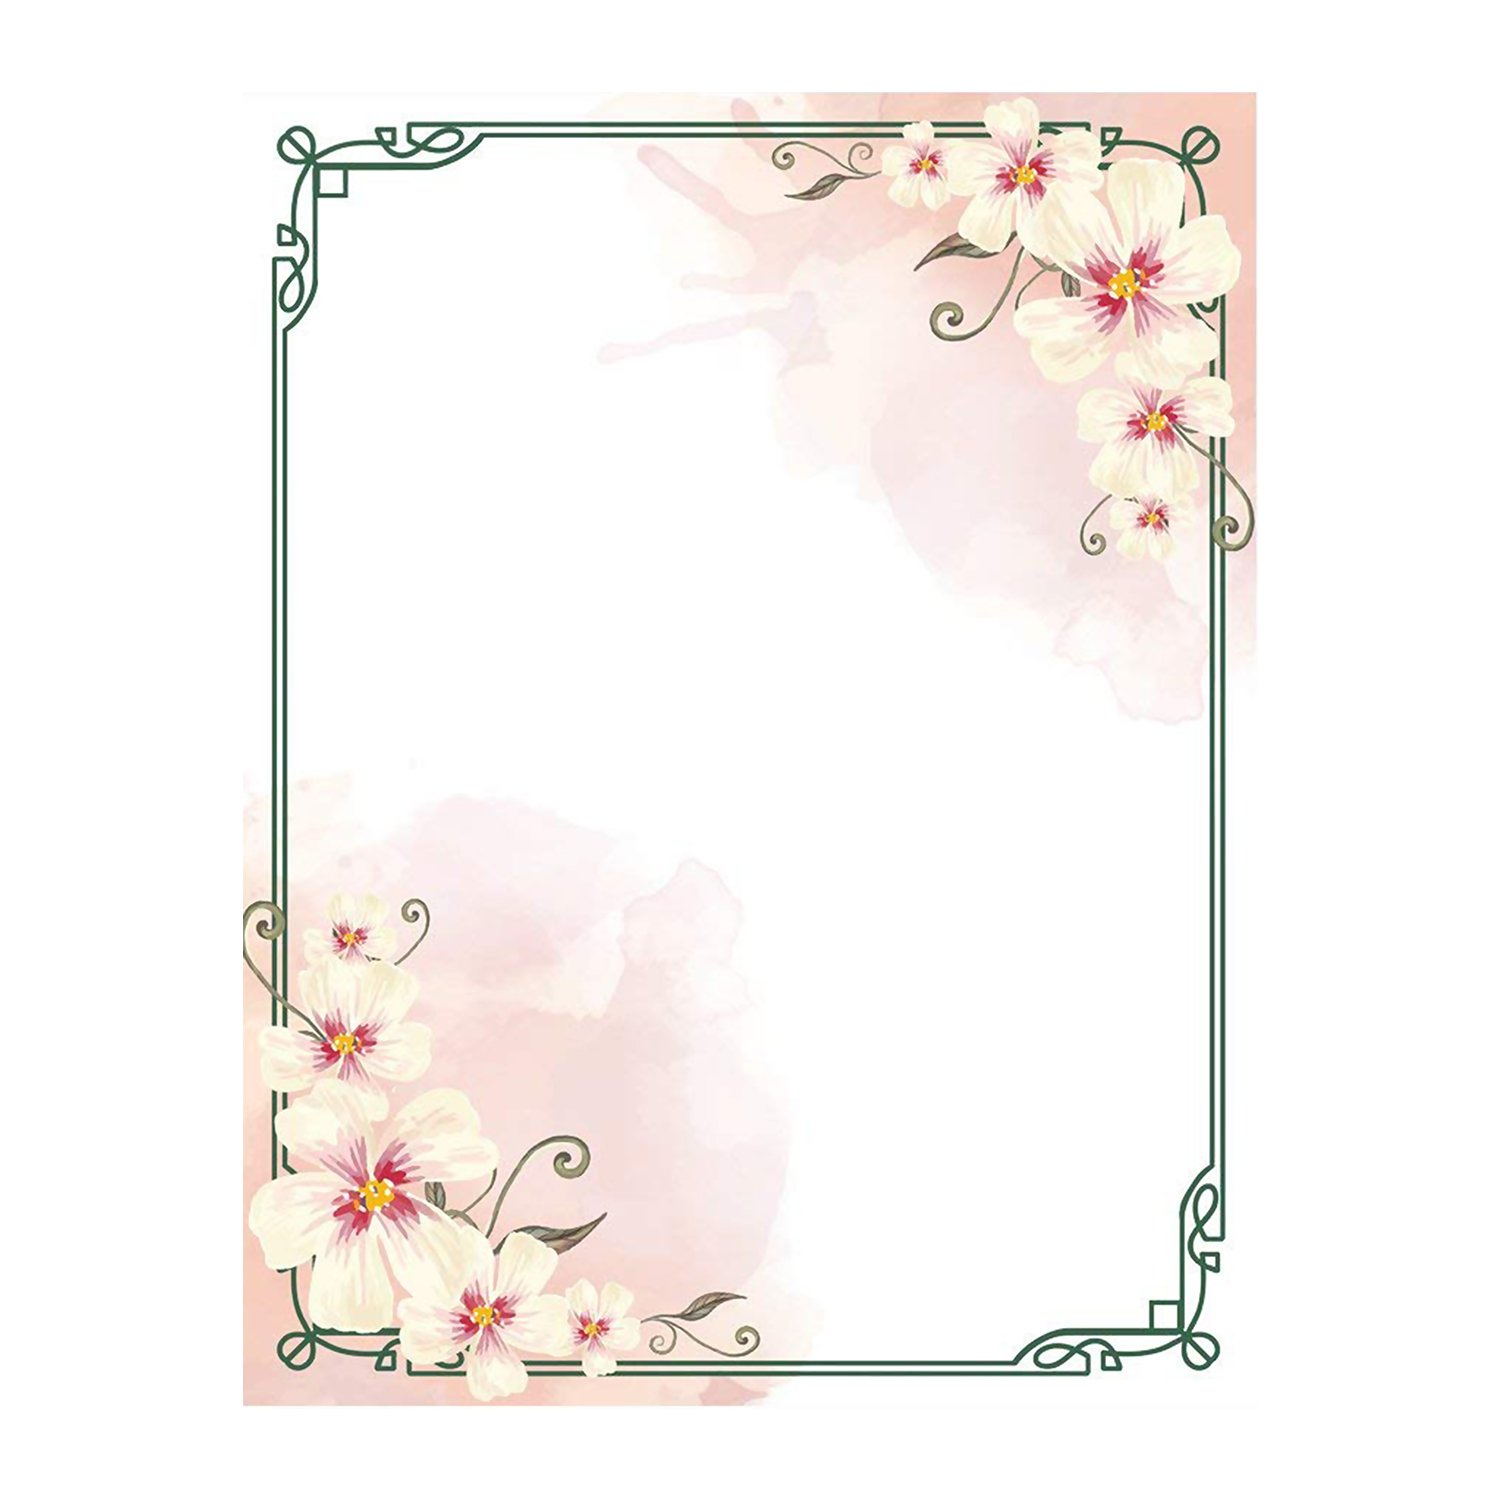 100 Stationery Writing Paper, with Cute Floral Designs Perfect for Notes or Letter Writing - White Orchids